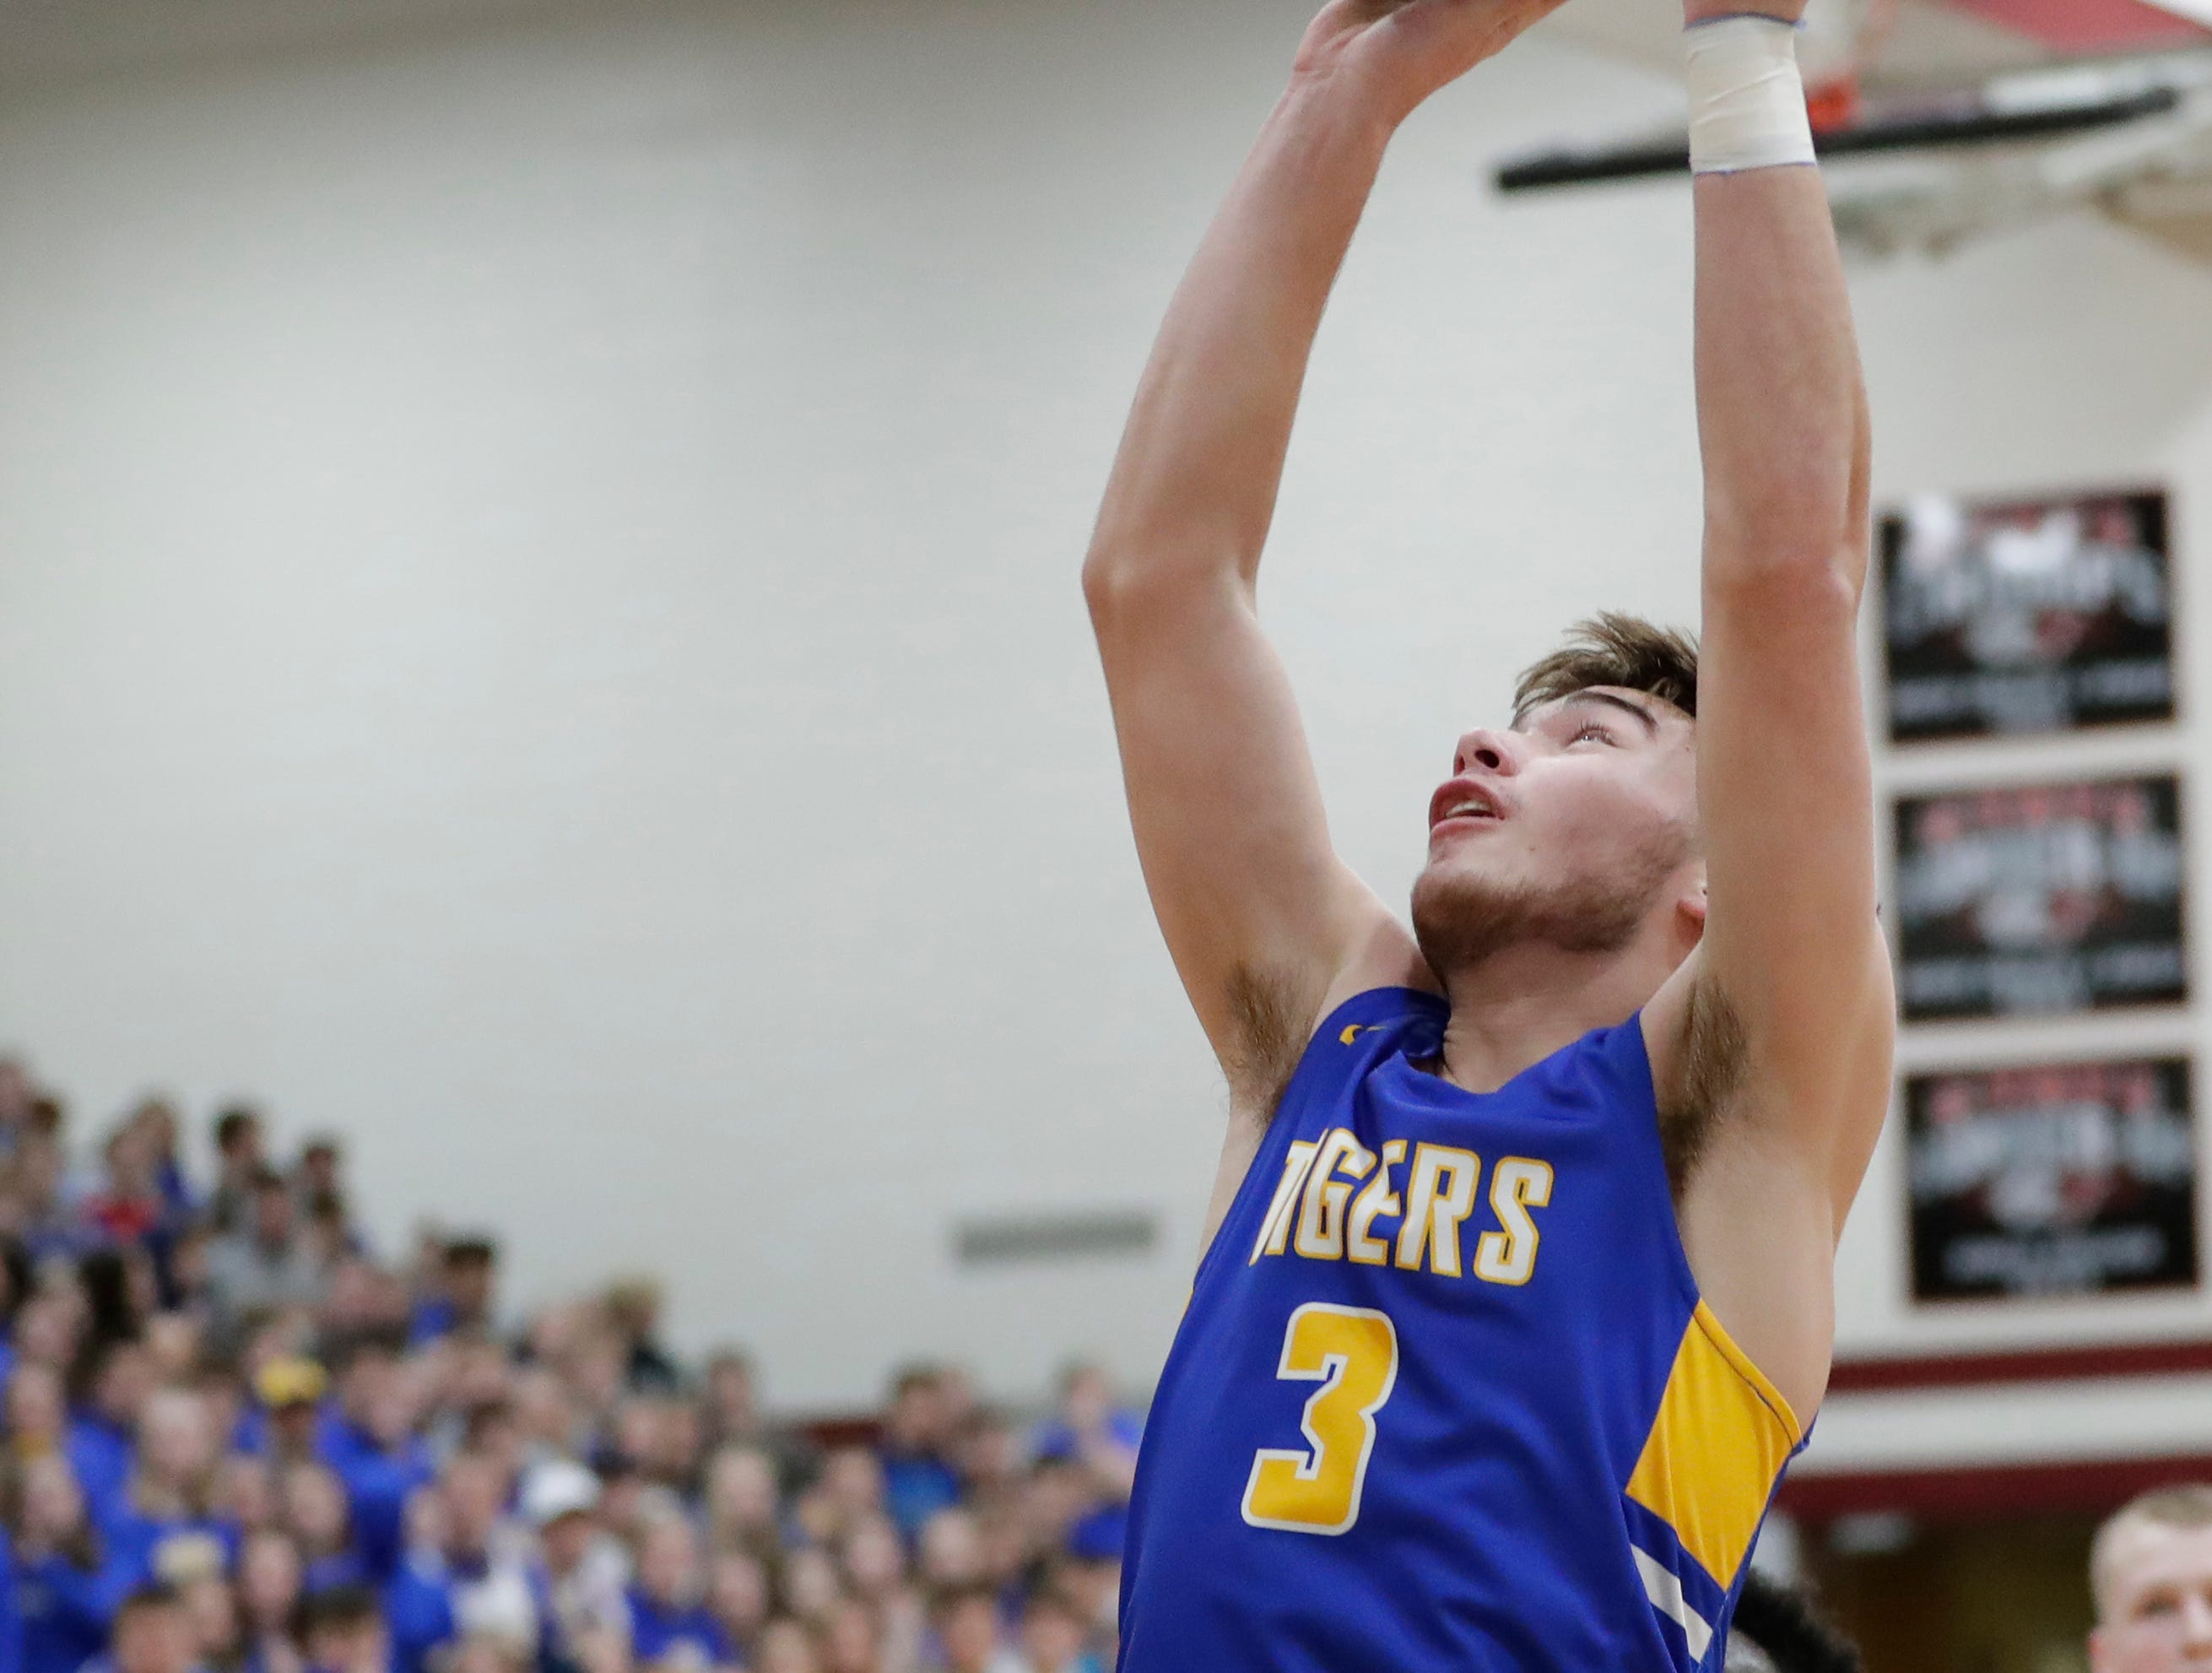 Howards Grove's Gavin Winter (3) shoots against Roncalli during a WIAA Division 4 sectional semifinal at New Holstein High School Thursday, March 7, 2019, in New Holstein, Wis. Joshua Clark/USA TODAY NETWORK-Wisconsin